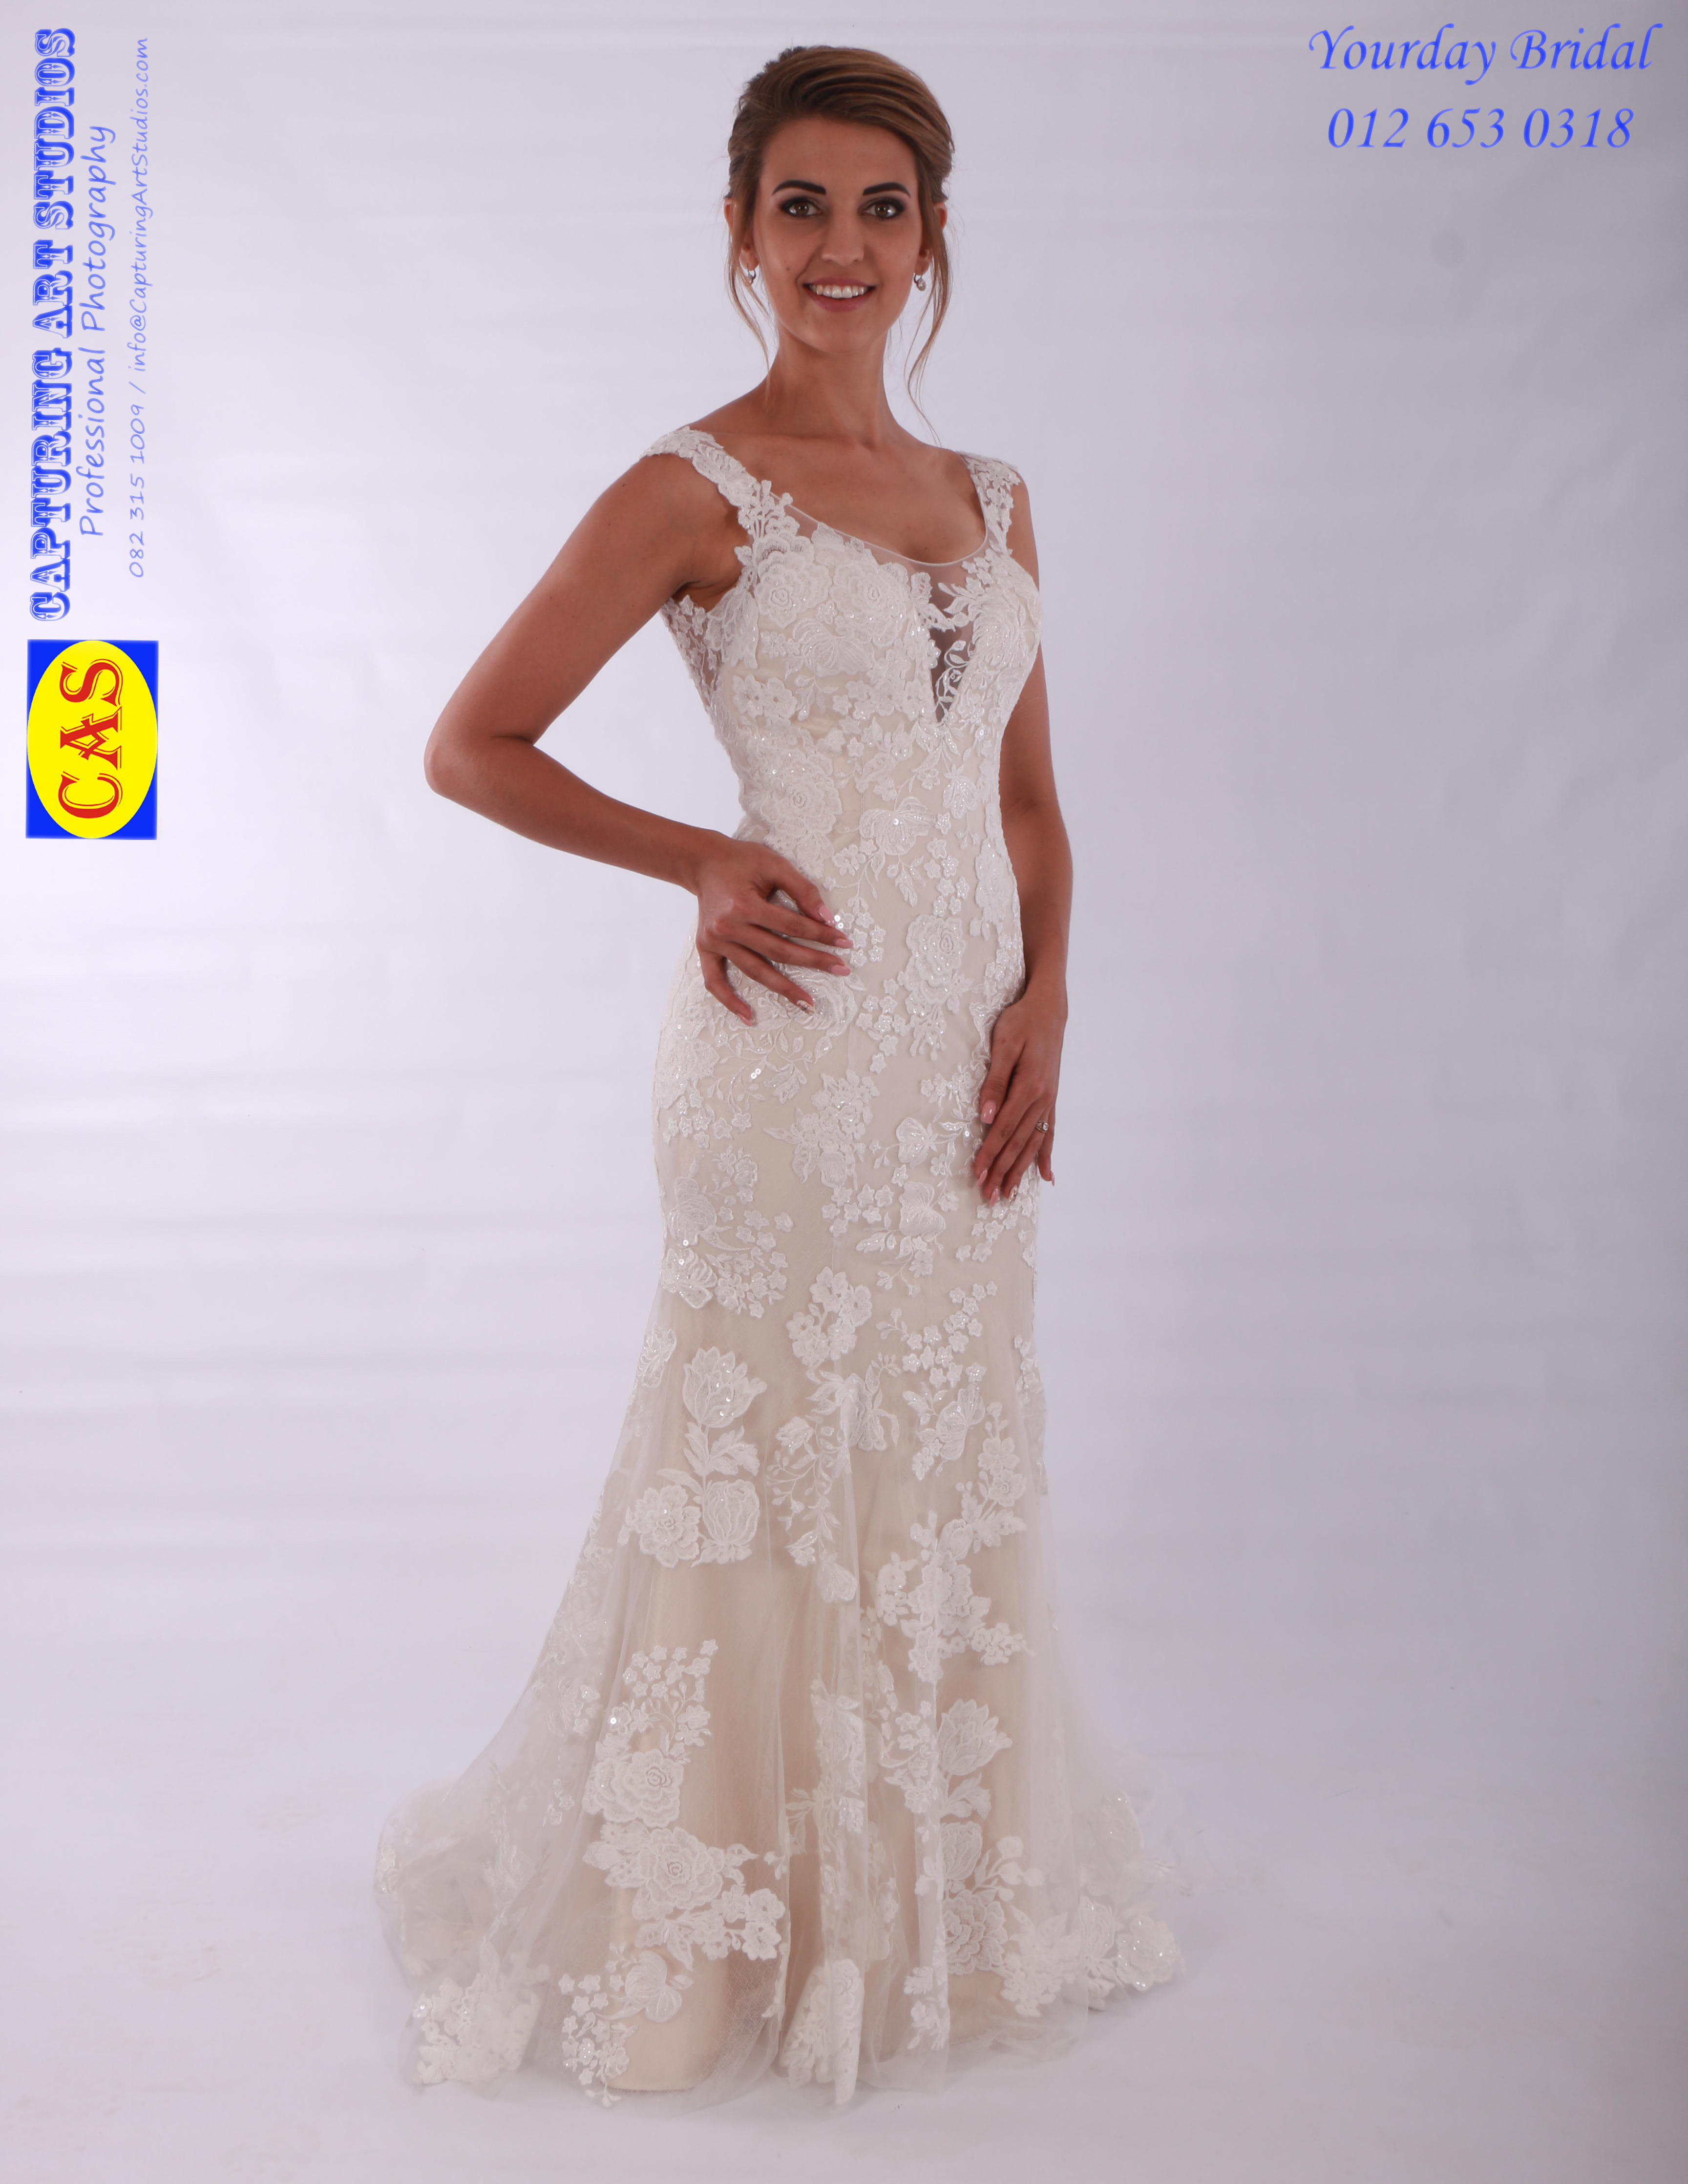 exclusive-wedding-collection-2-f